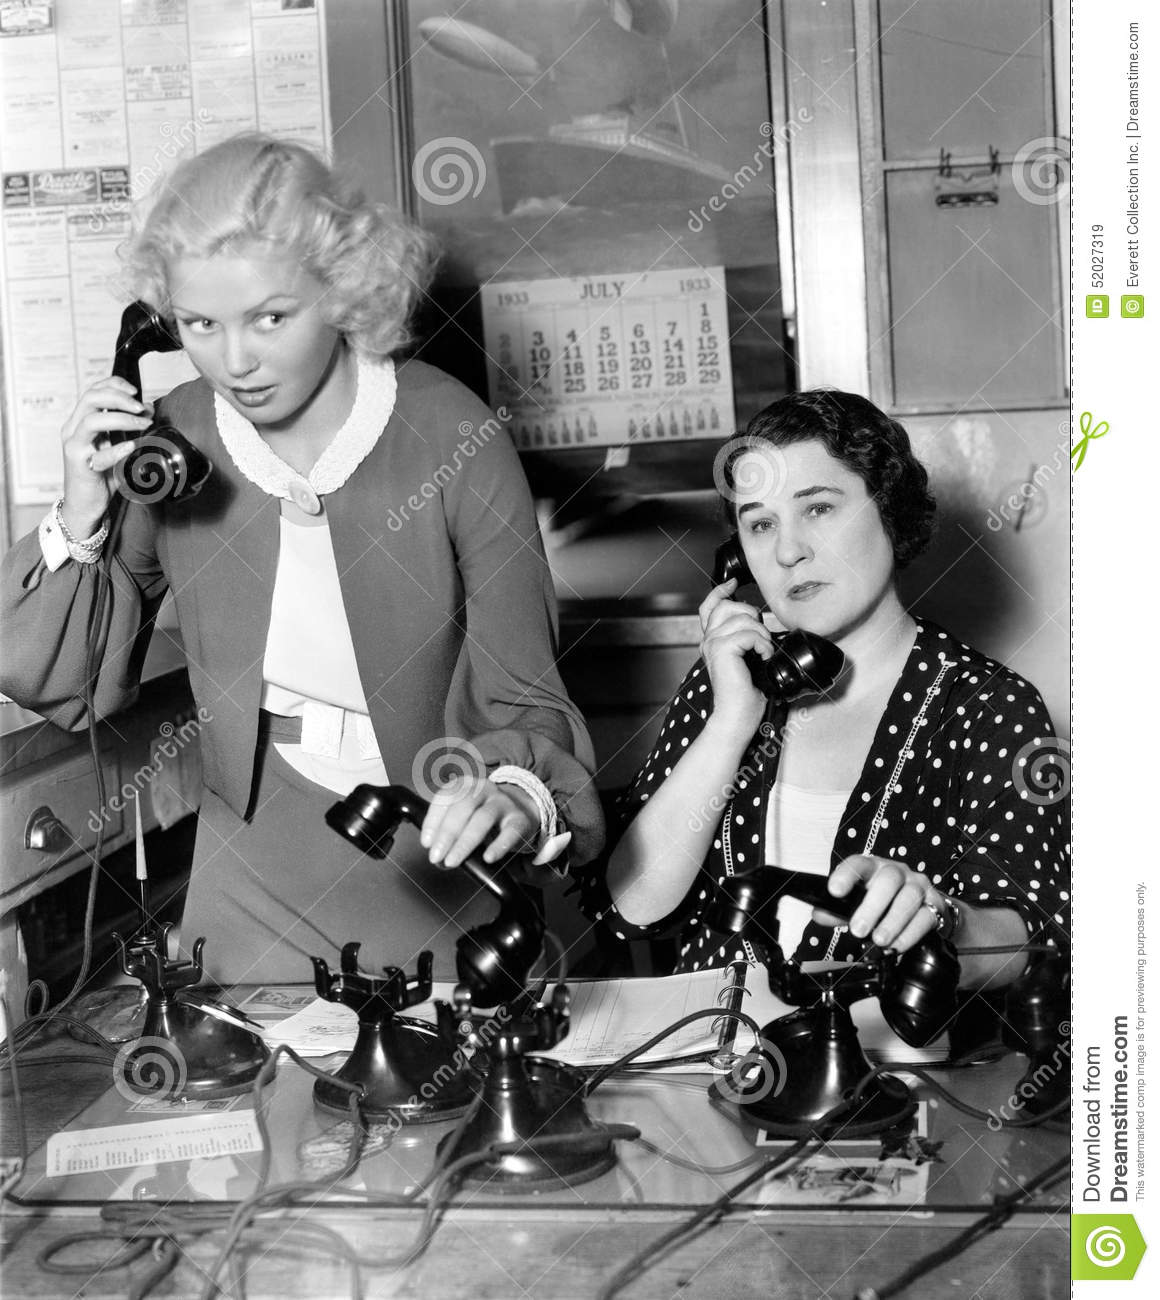 Two women working on a phone bank